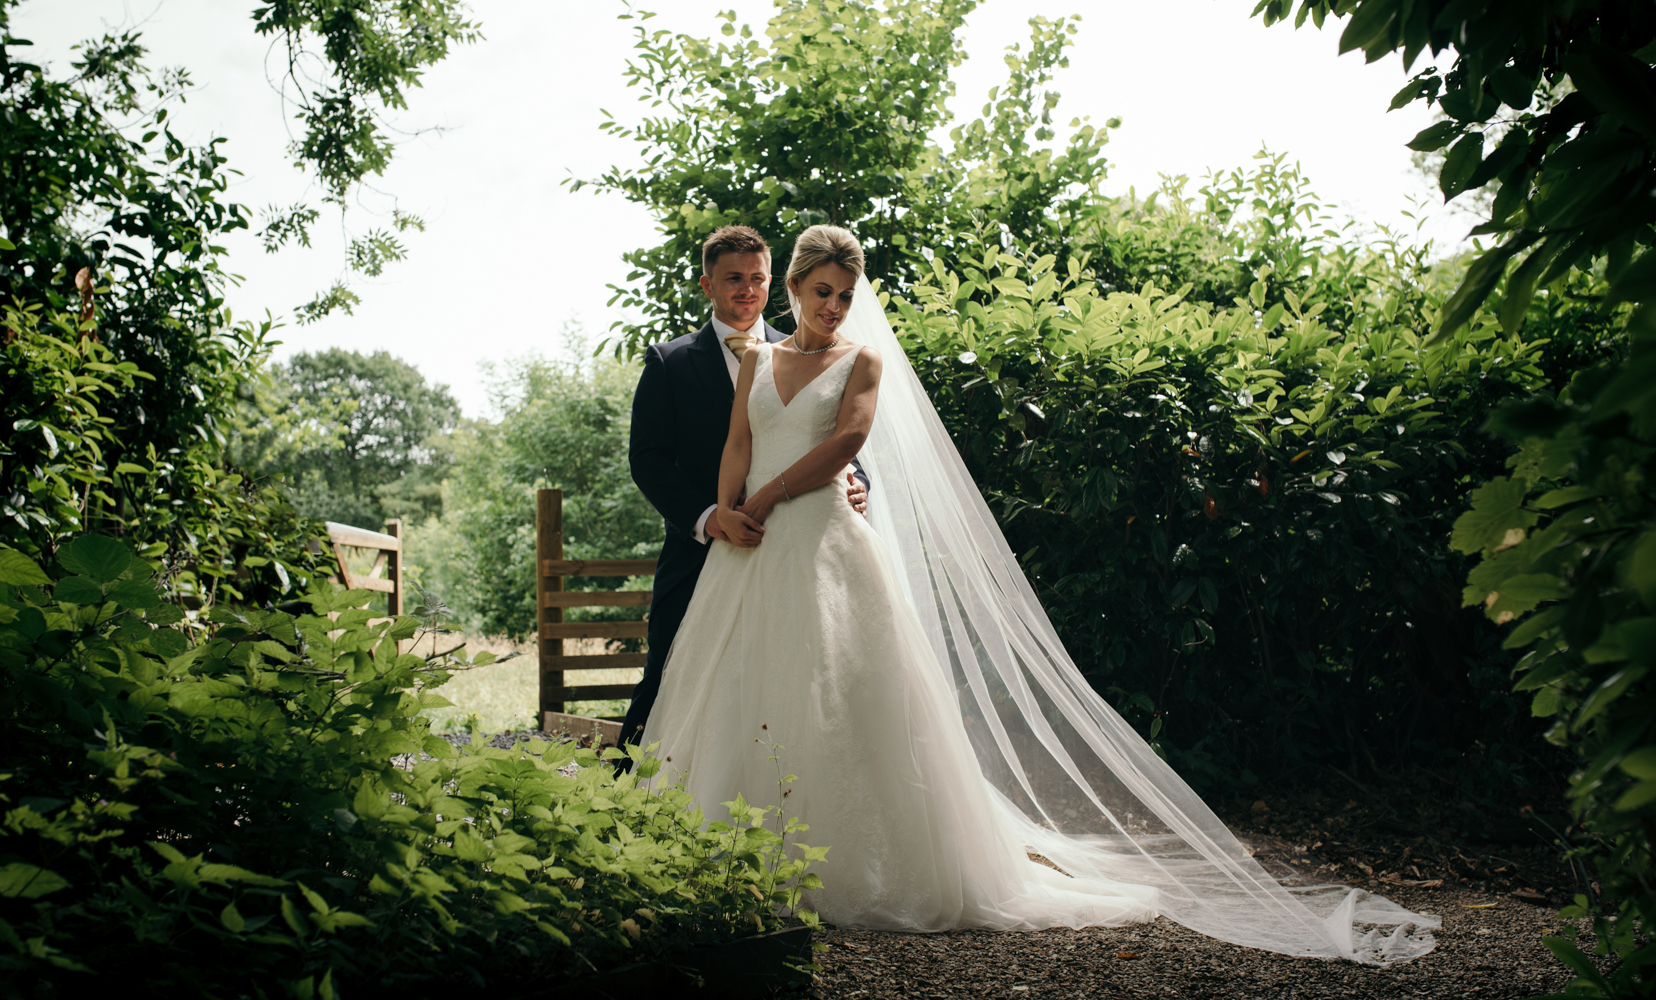 The bride and grooms portrait taken just outside the gate leading into a field